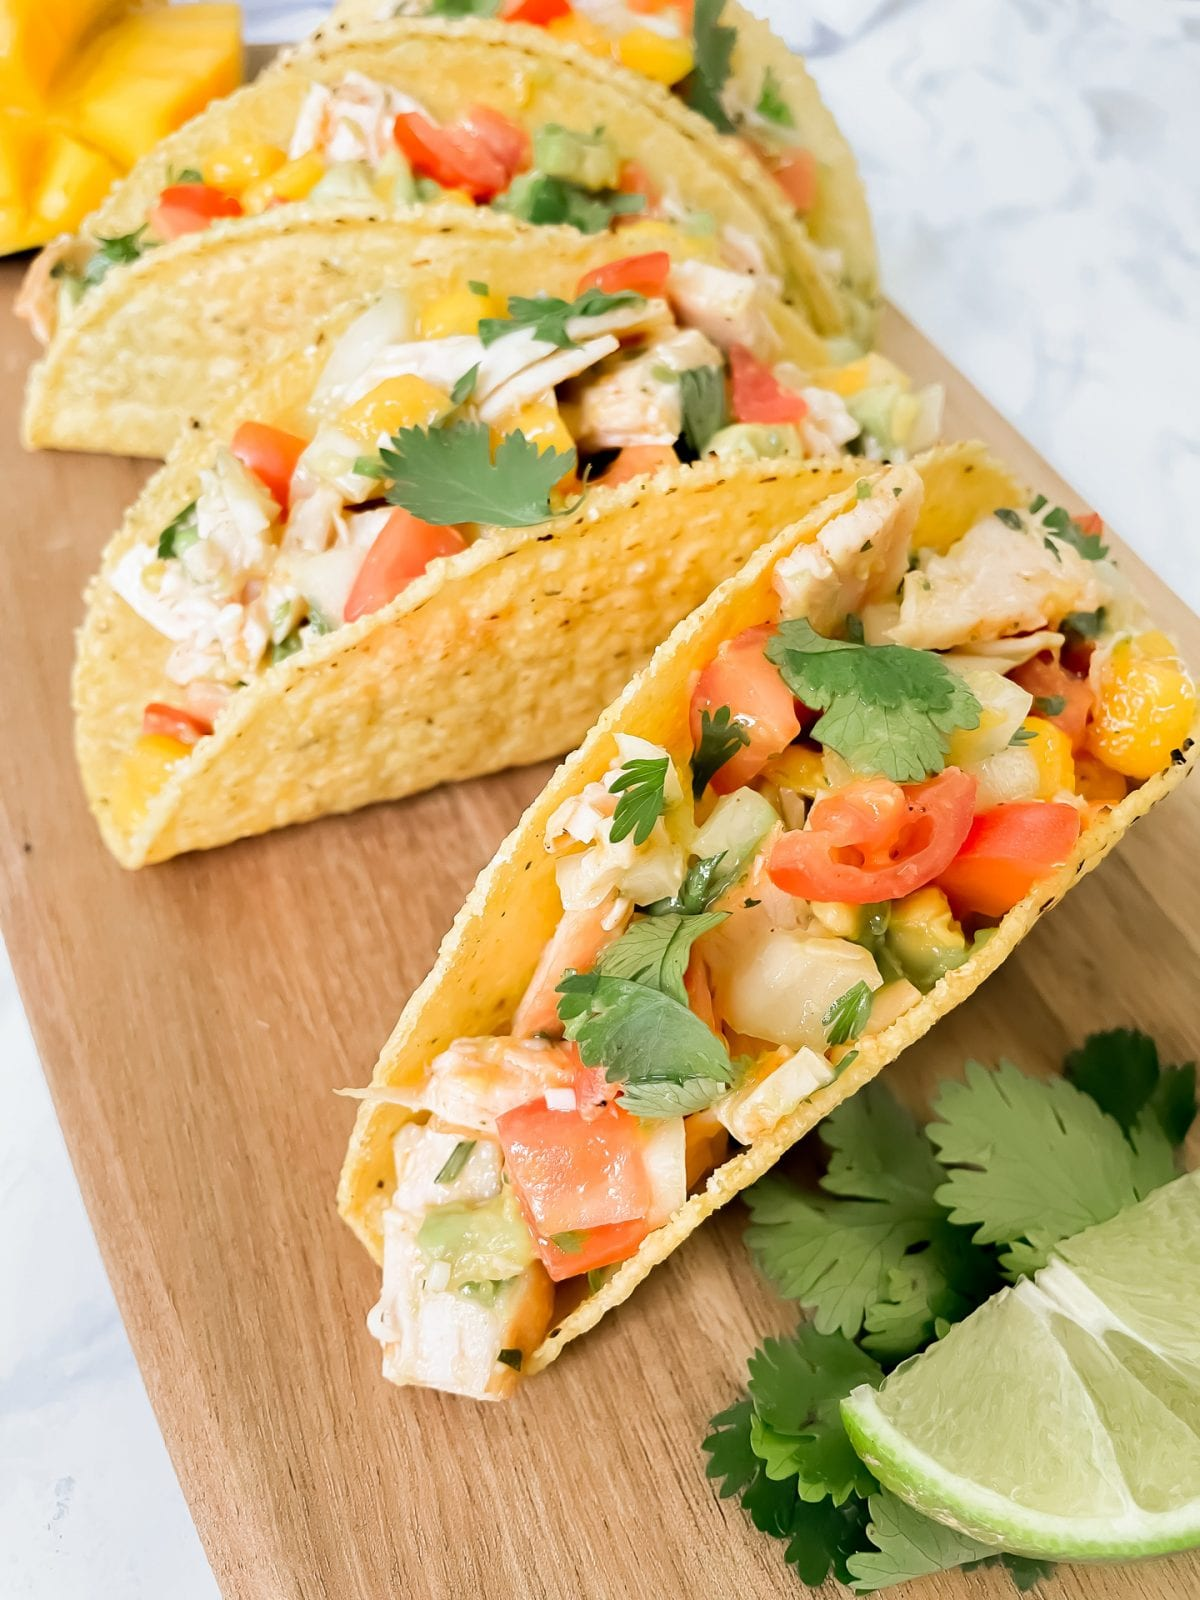 Easy recipe ideas - no cook turkey tacos with mango avocado salsa. Packed with healthy vegetables, fruit and lean protein. Get the full recipe on yesmissy.com